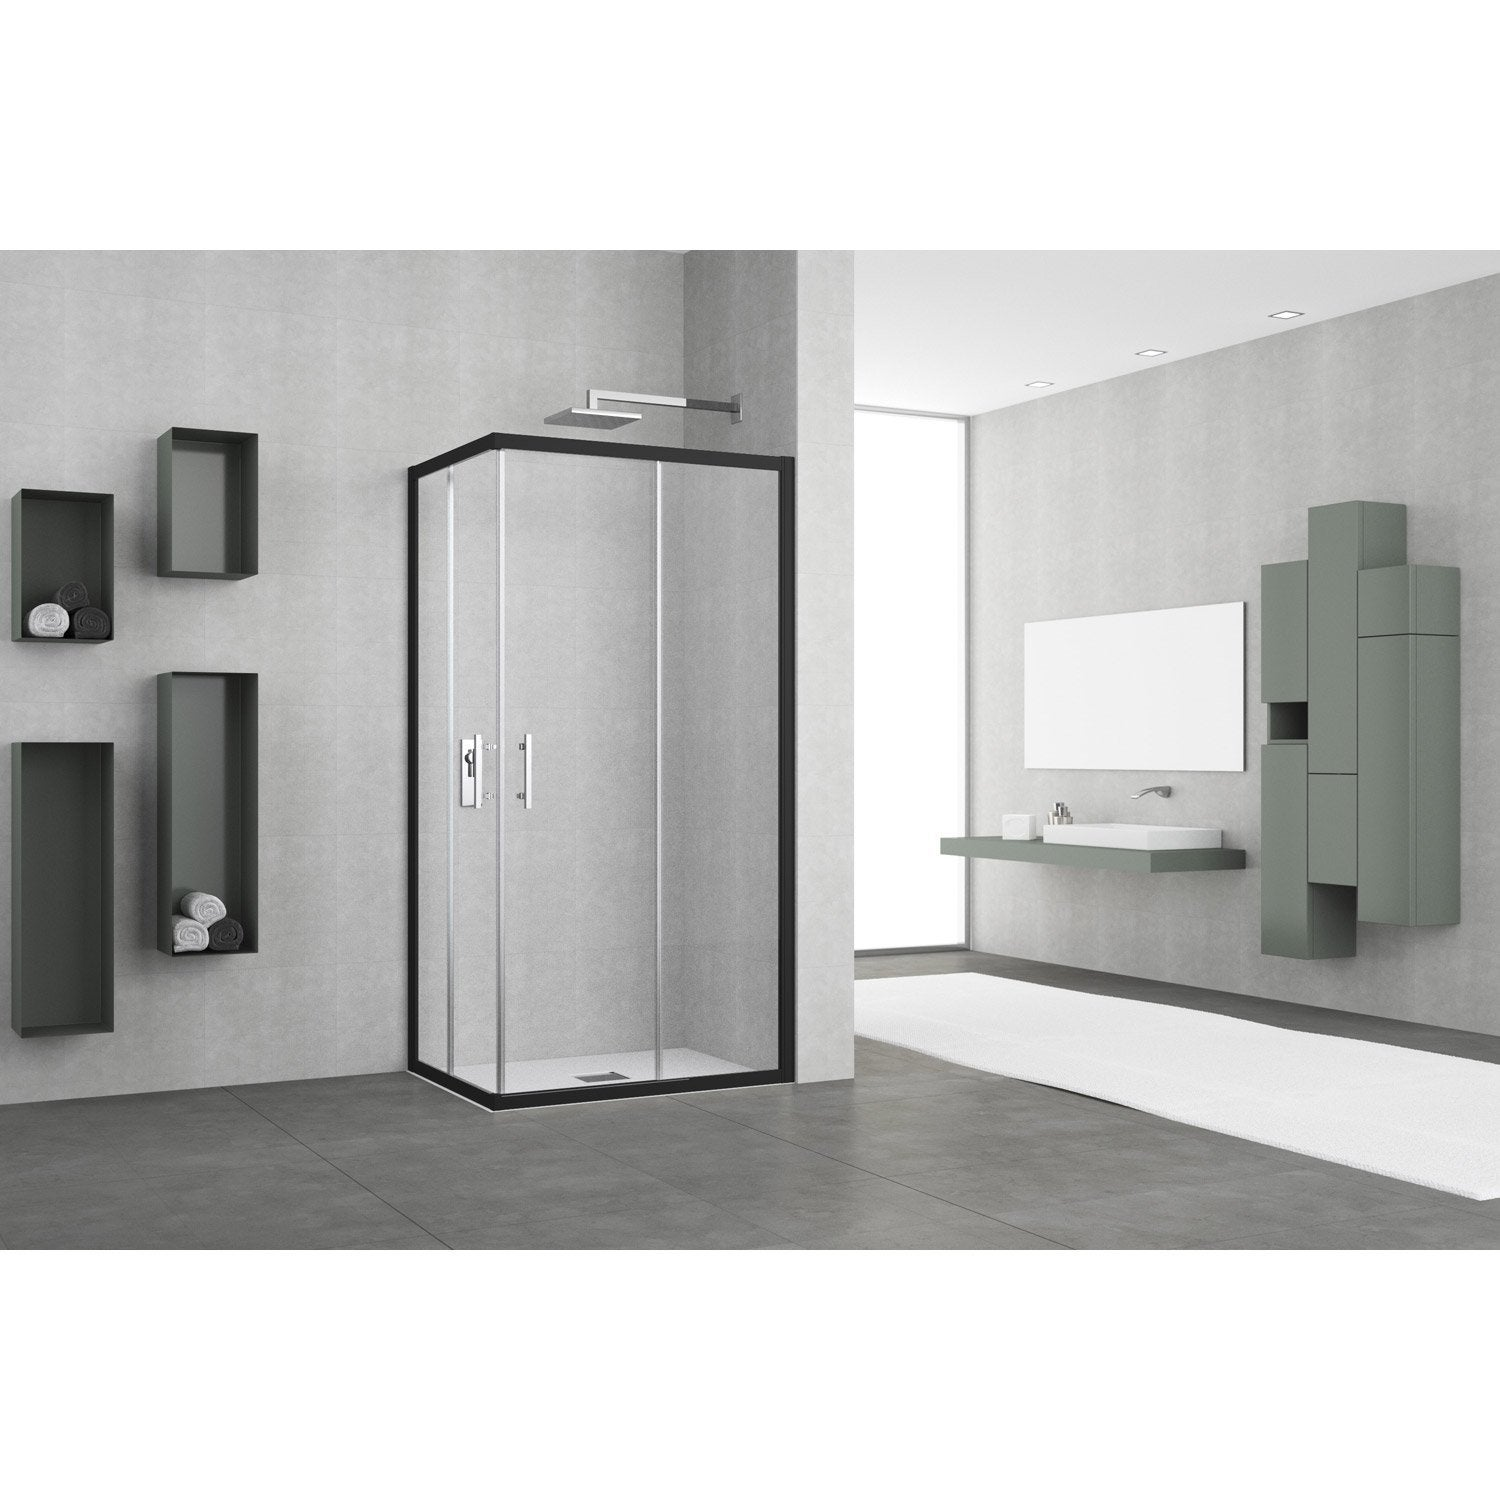 Porte de douche coulissante angle rectangle x cm noir elyt ler - Porte coulissante douche 100 ...